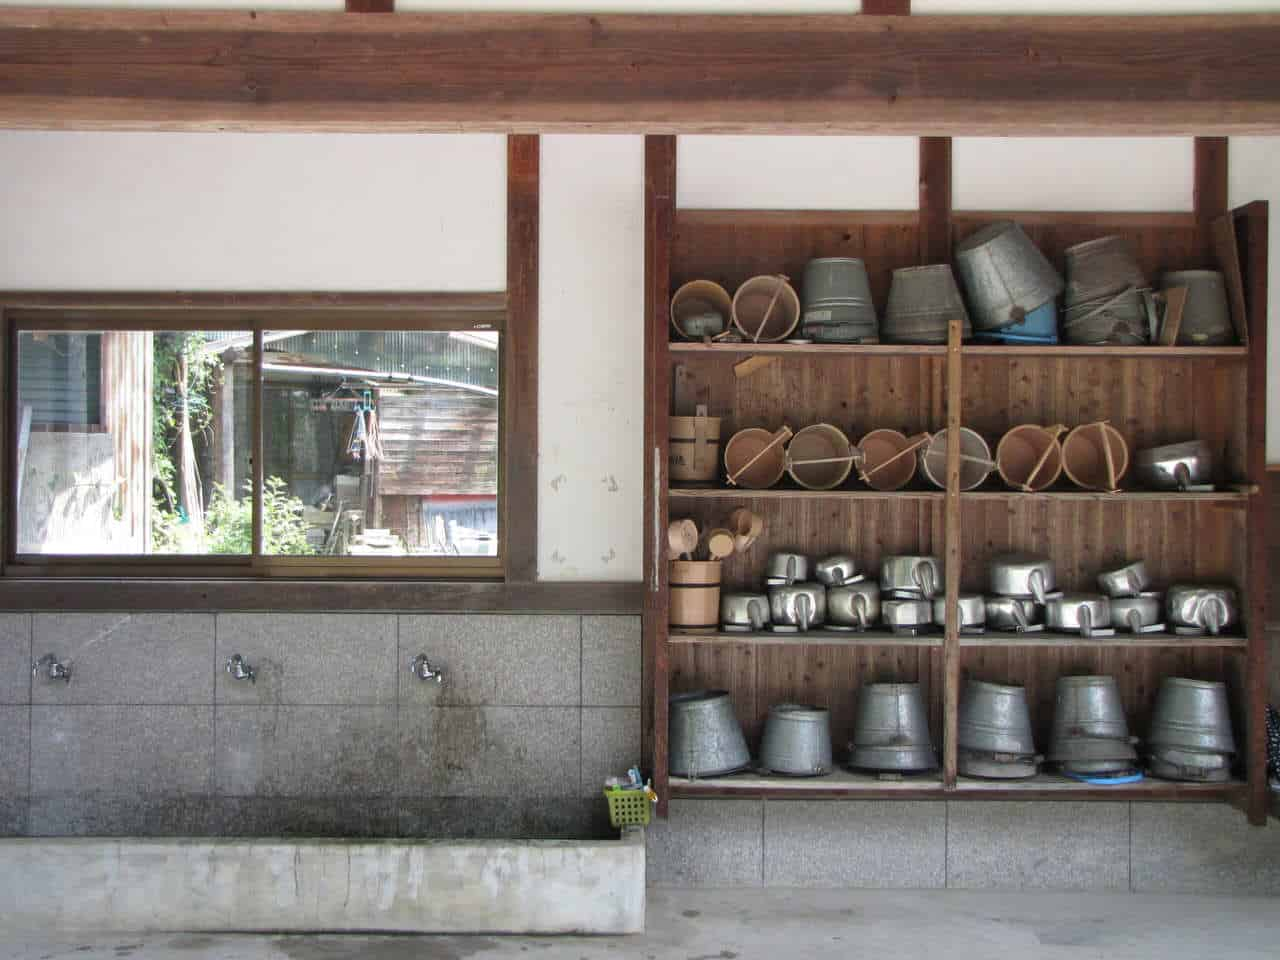 Death in Japan: Spirituality and Culture